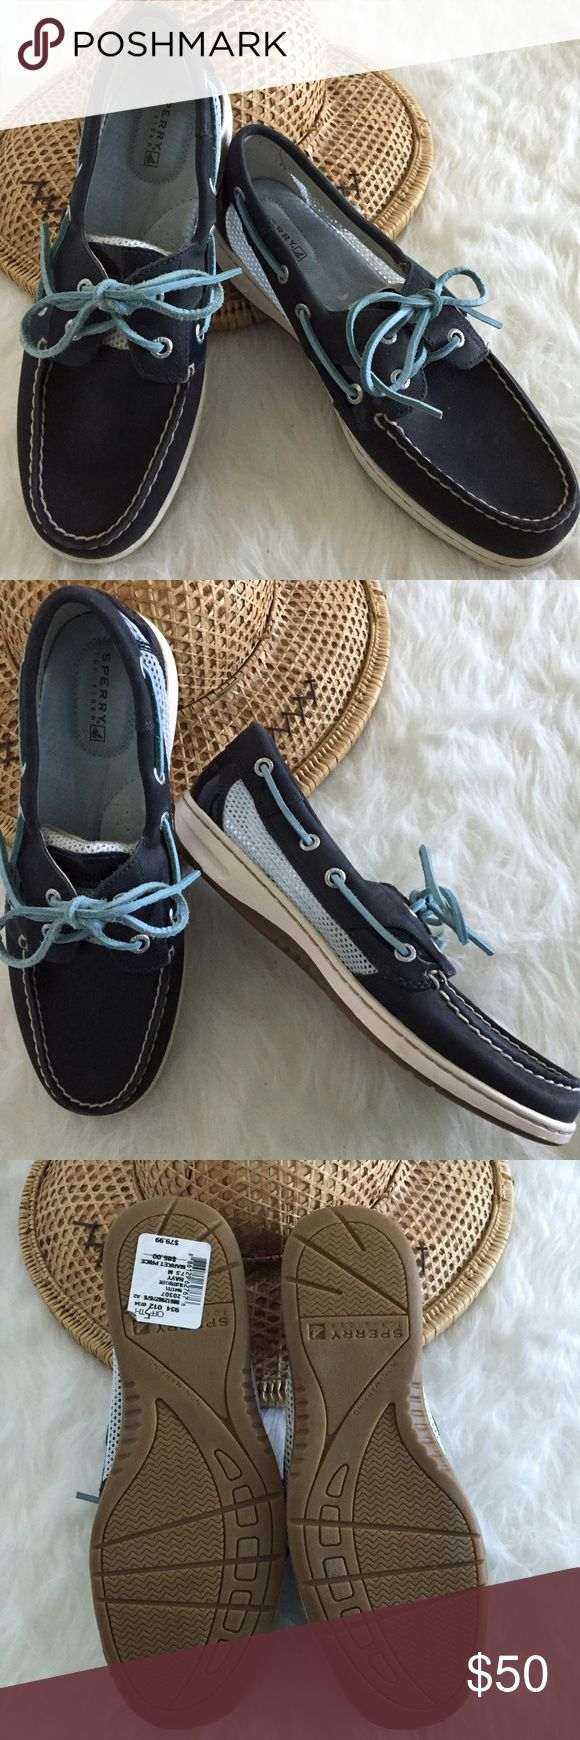 Spotted while shopping on Poshmark: Navy Sperry Top Sider Shoes! #poshmark #fashion #shopping #style #Sperry Top-Sider #Shoes